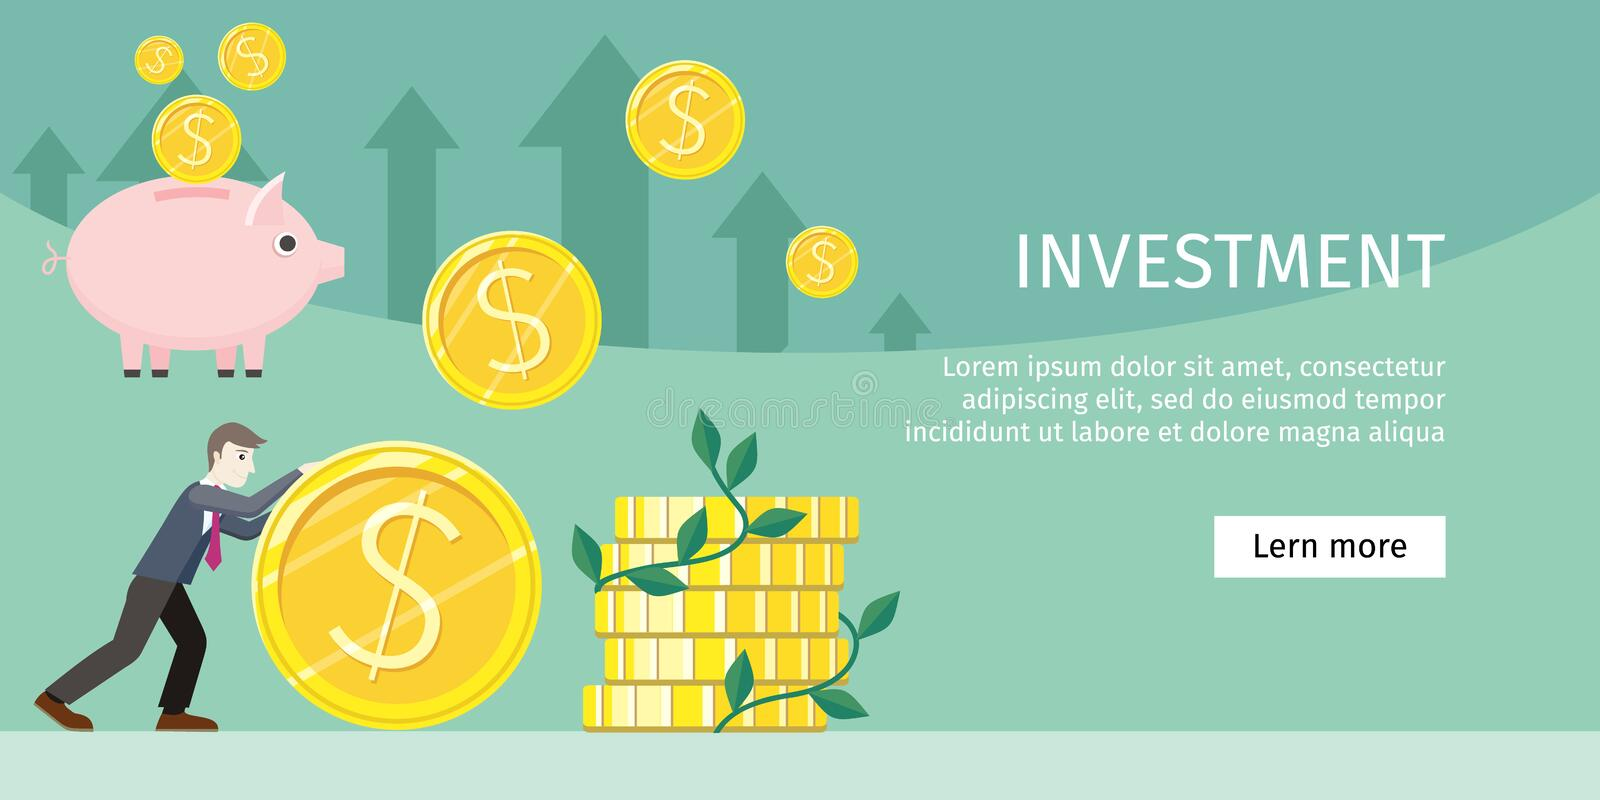 Investment Concept Flat Style Vector Illustration. Investment concept flat style vector. Smiling businessman rolls giant gold dollar coin near stack of money royalty free illustration